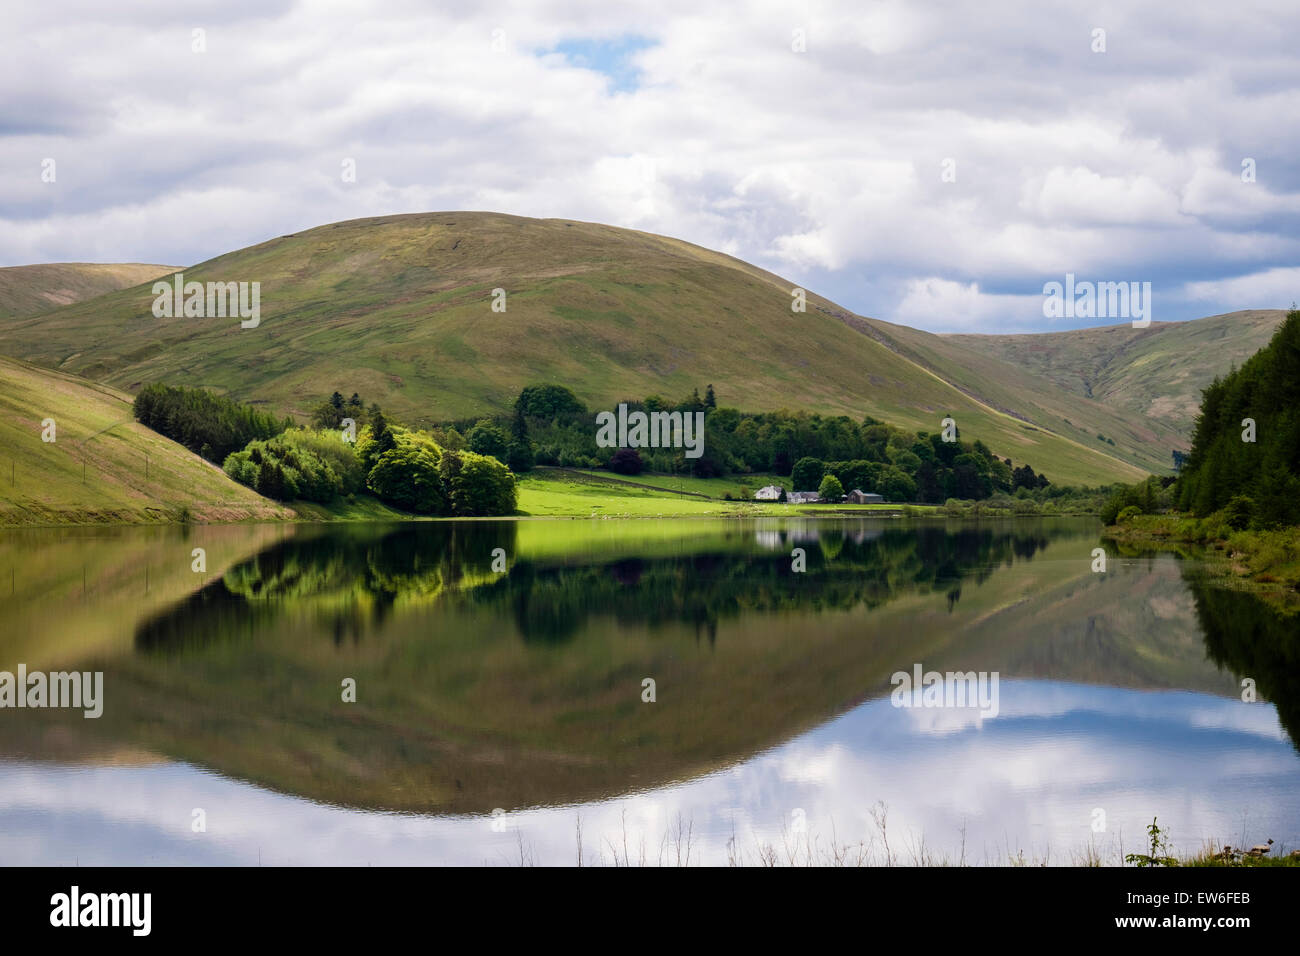 Hills reflected in tranquil waters of Loch of the Lowes in Yarrow Valley at St Mary's Loch in Southern Uplands. - Stock Image